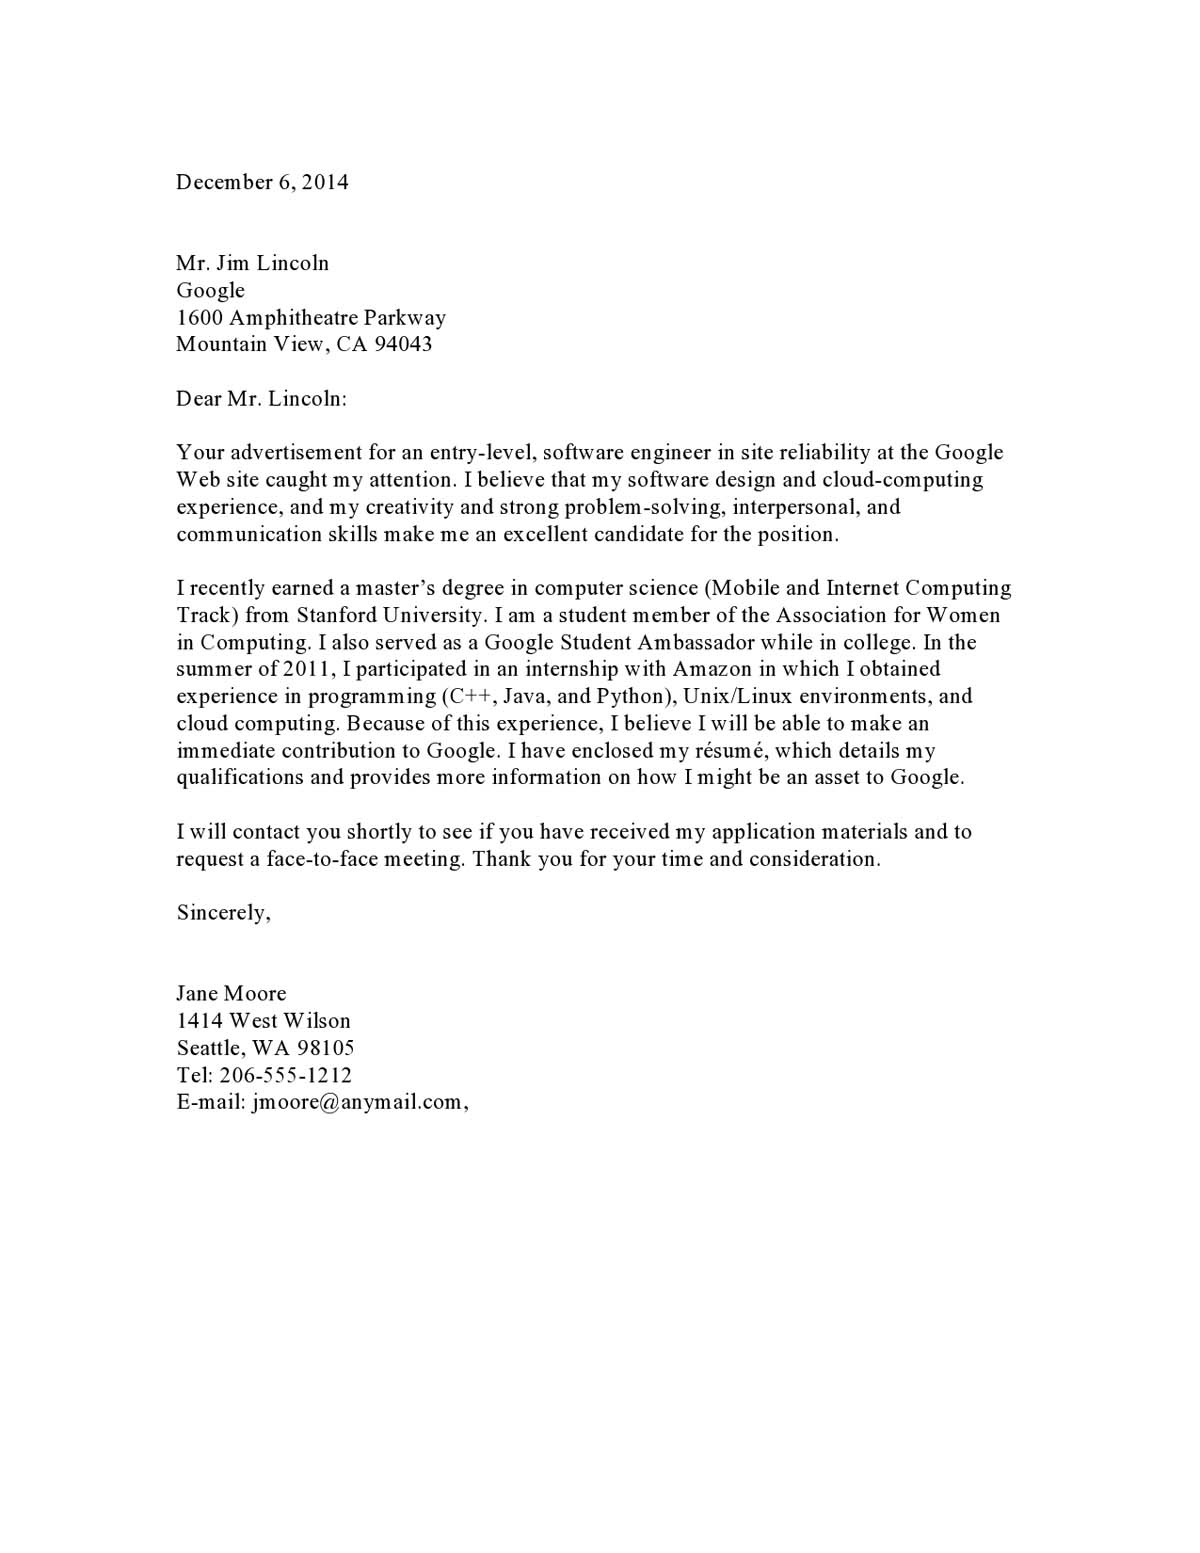 cover letter samples templates examples vault free sample for resume cletreinter09 Resume Free Sample Cover Letter For Resume